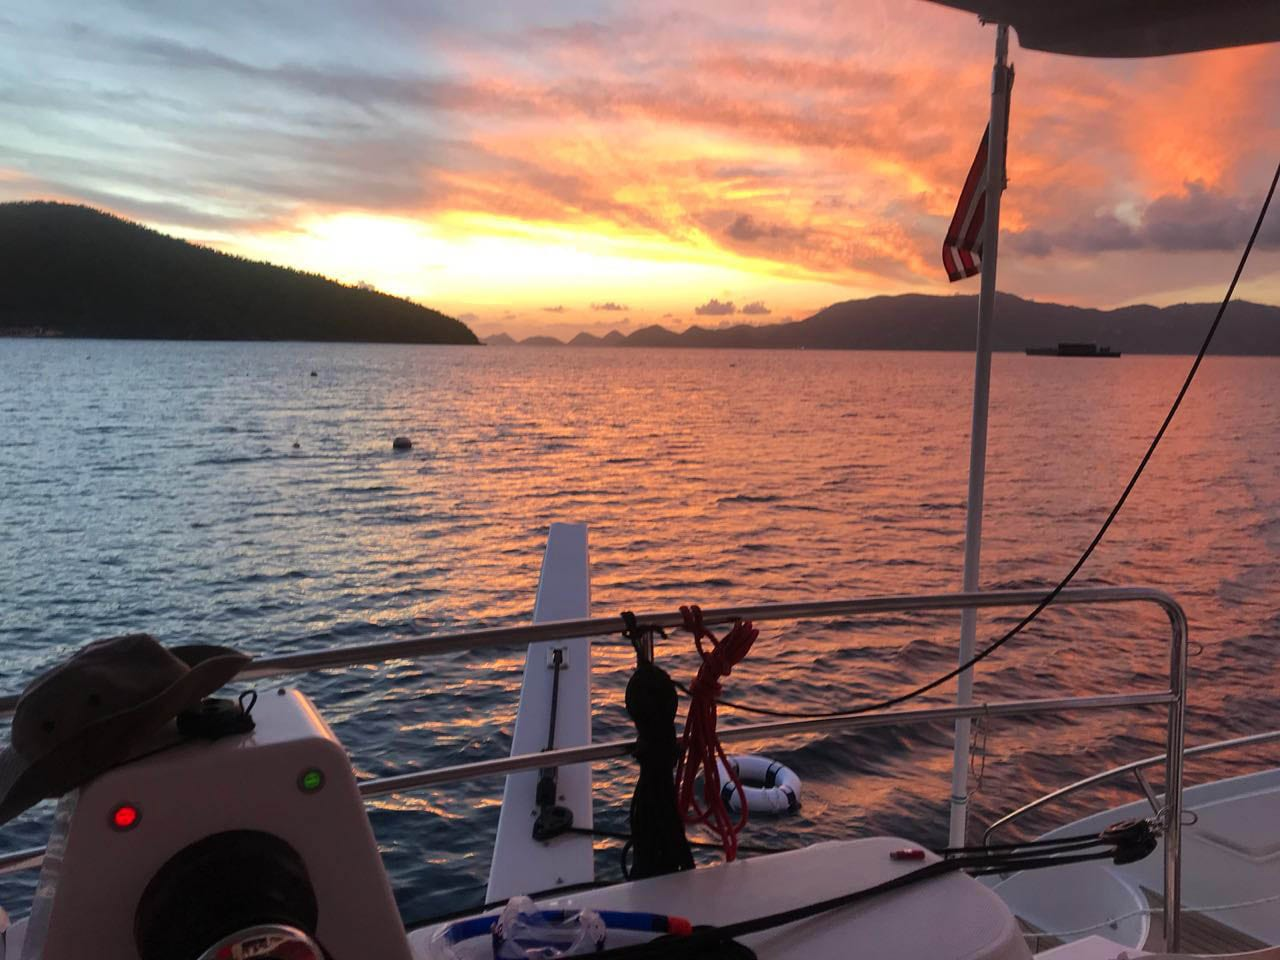 Seahorse anchored at the British Virgin Islands viewing a sunset